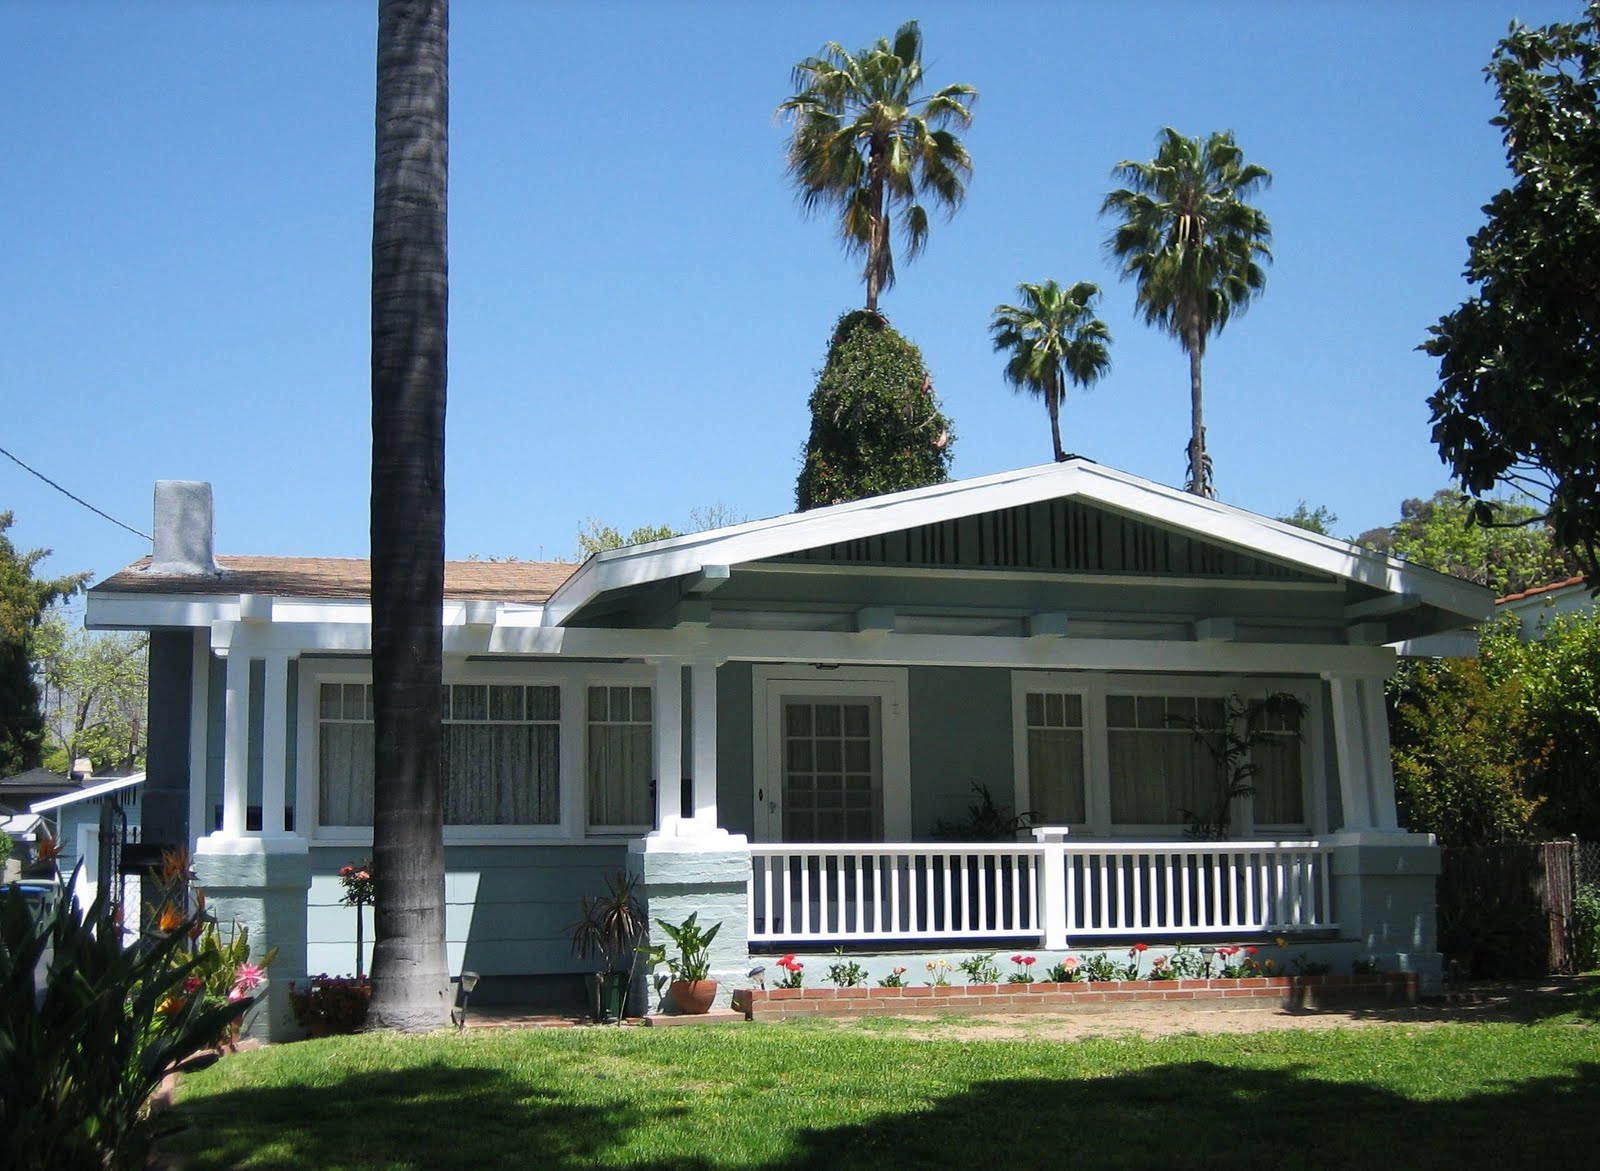 L a places bungalow heaven - What is a bungalow house ...